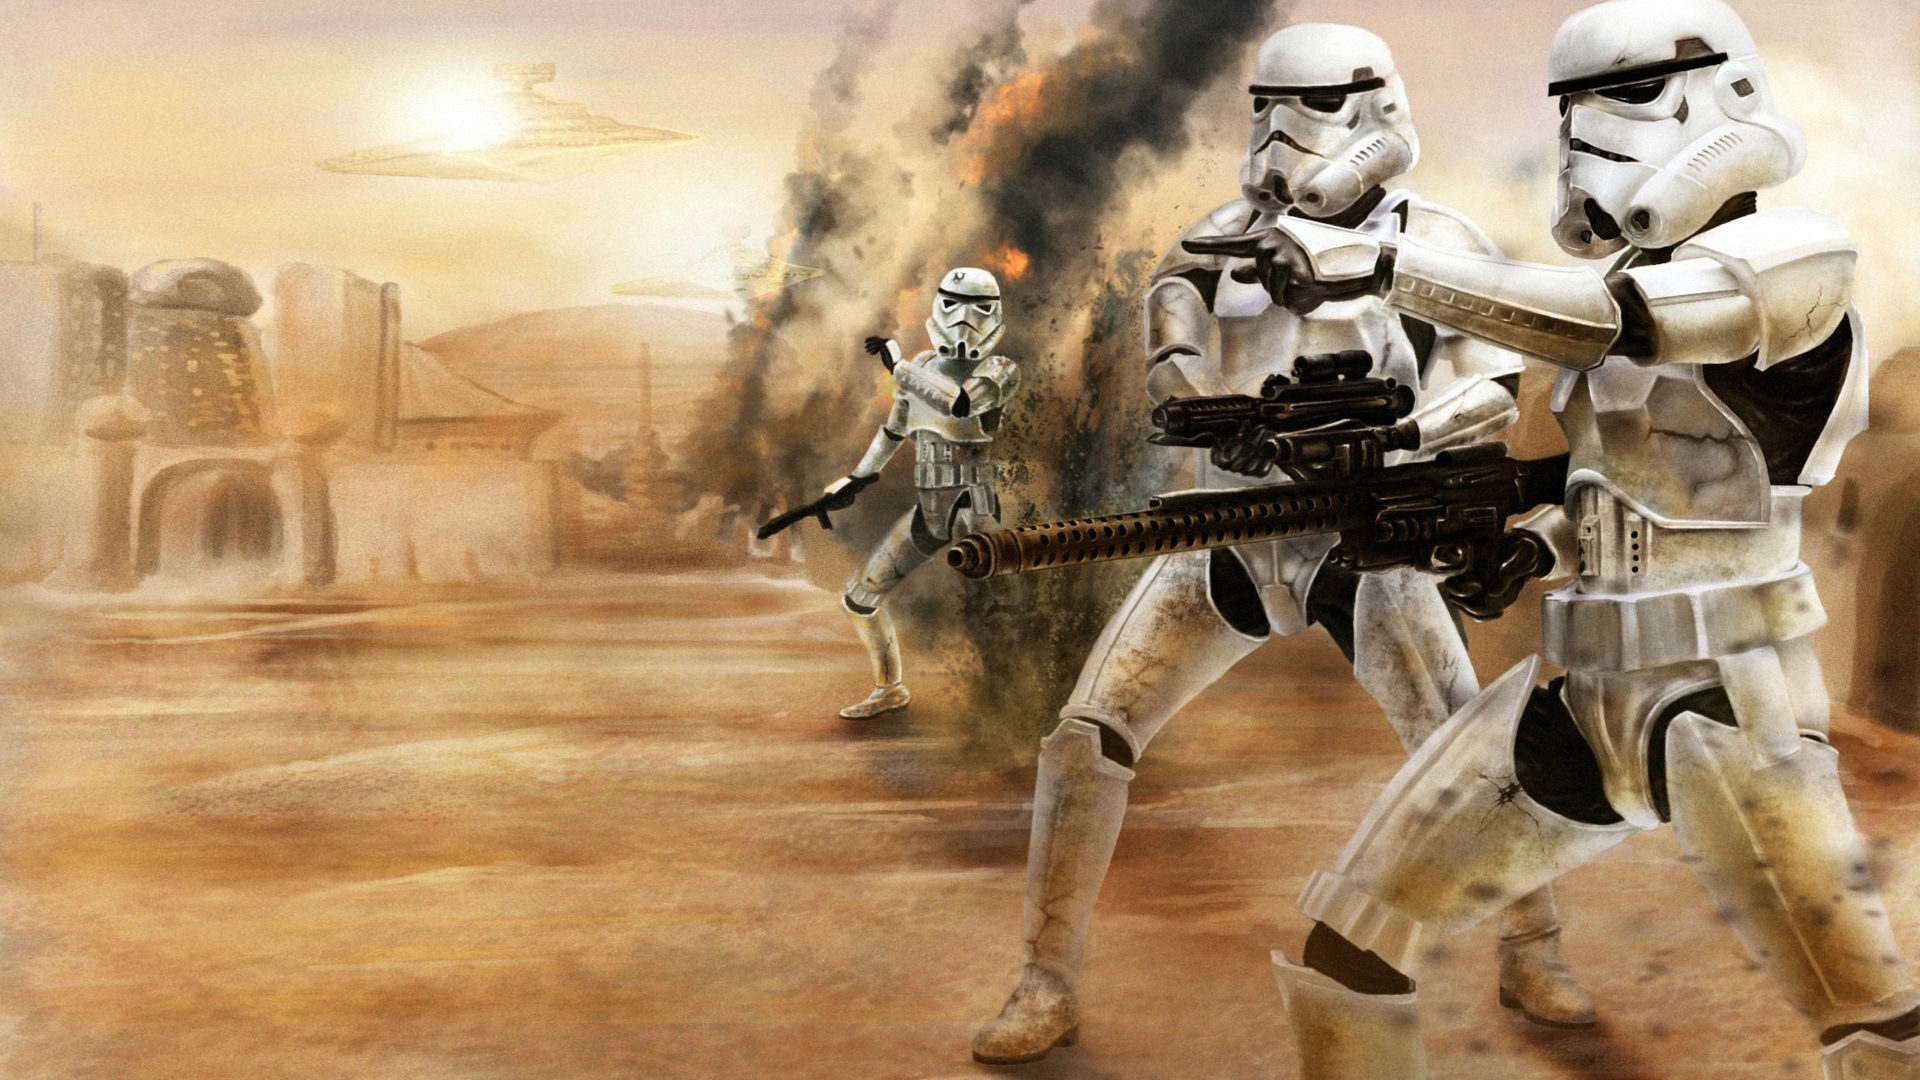 Iphone 5 Stormtrooper Wallpaper Star Wars Stormtroopers Elite Soldiers Of The Royal Army